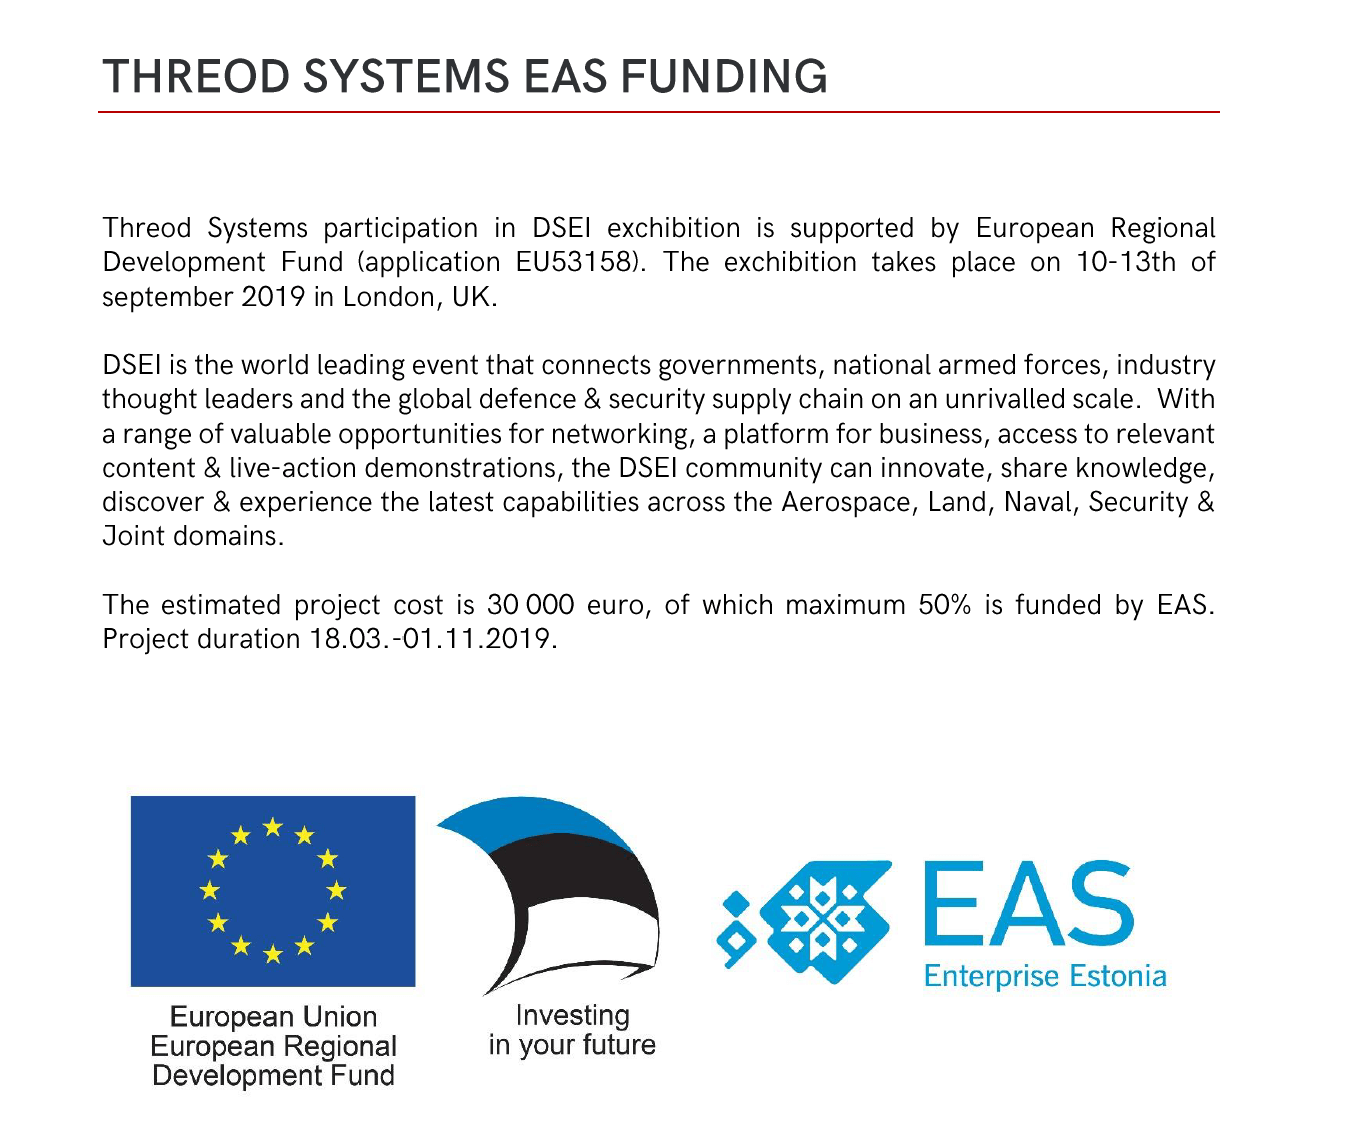 Threod Systems EAS funding